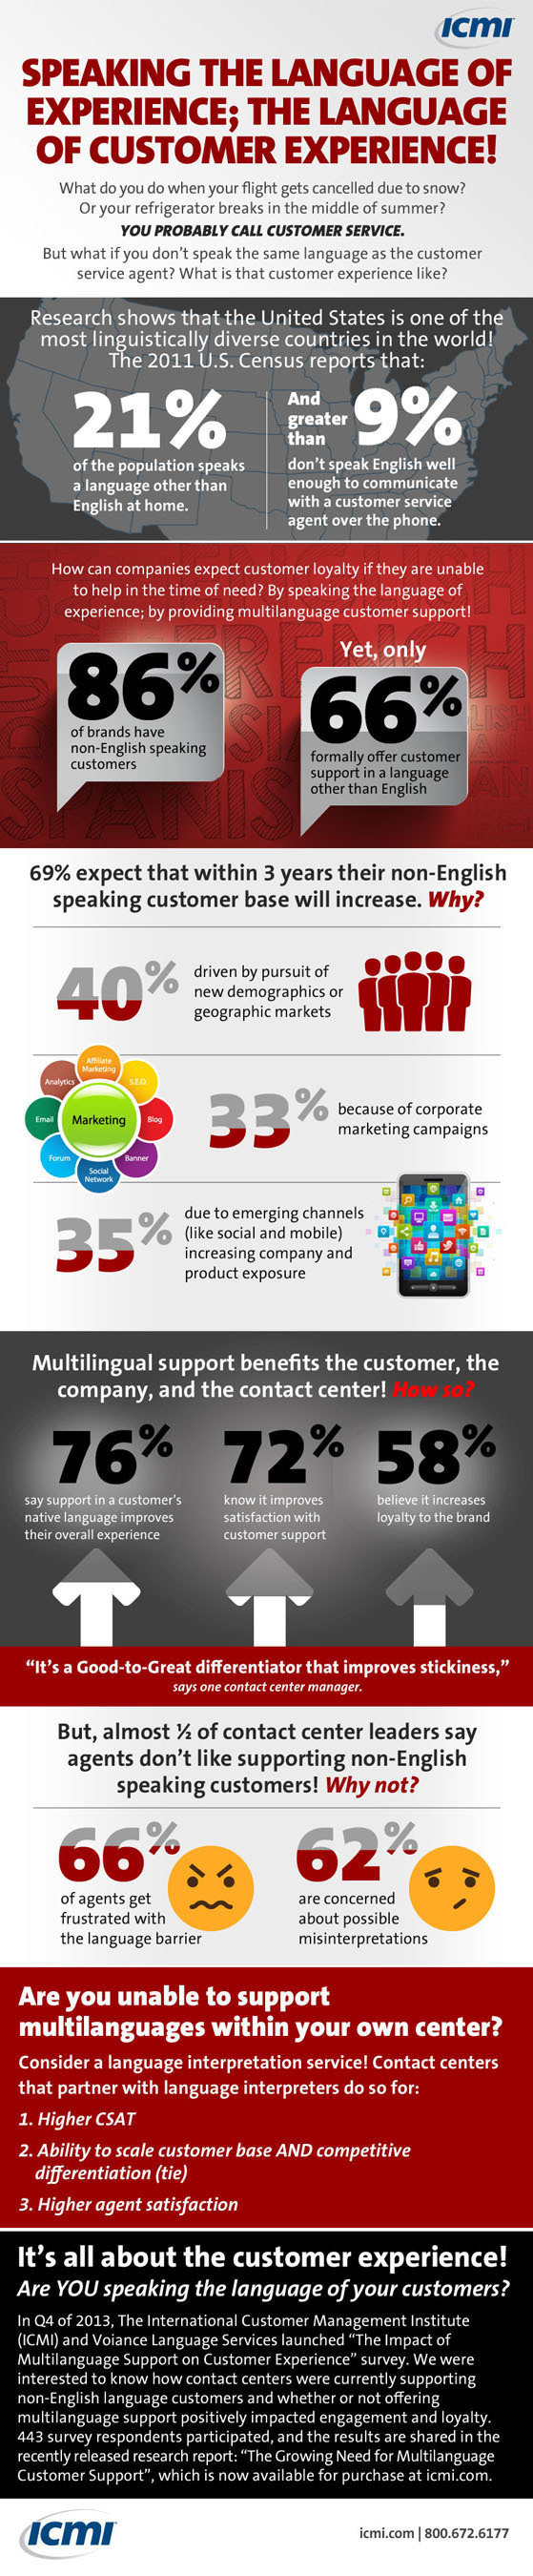 "Are you speaking the language of your customers? In 2013 ICMI and Voiance Language Services launched ""The Impact of Multilanguage Support on Customer Experience"" survey to know how contact centers were currently supporting non-English language customers and how support positively impacted engagement and loyalty. This InfoGraphic highlights some of the data, while the newly released research report, ""The Growing Need for Multilanguage Customer Support"" provides a more thorough view.  (PRNewsFoto/International Customer Management  ..."